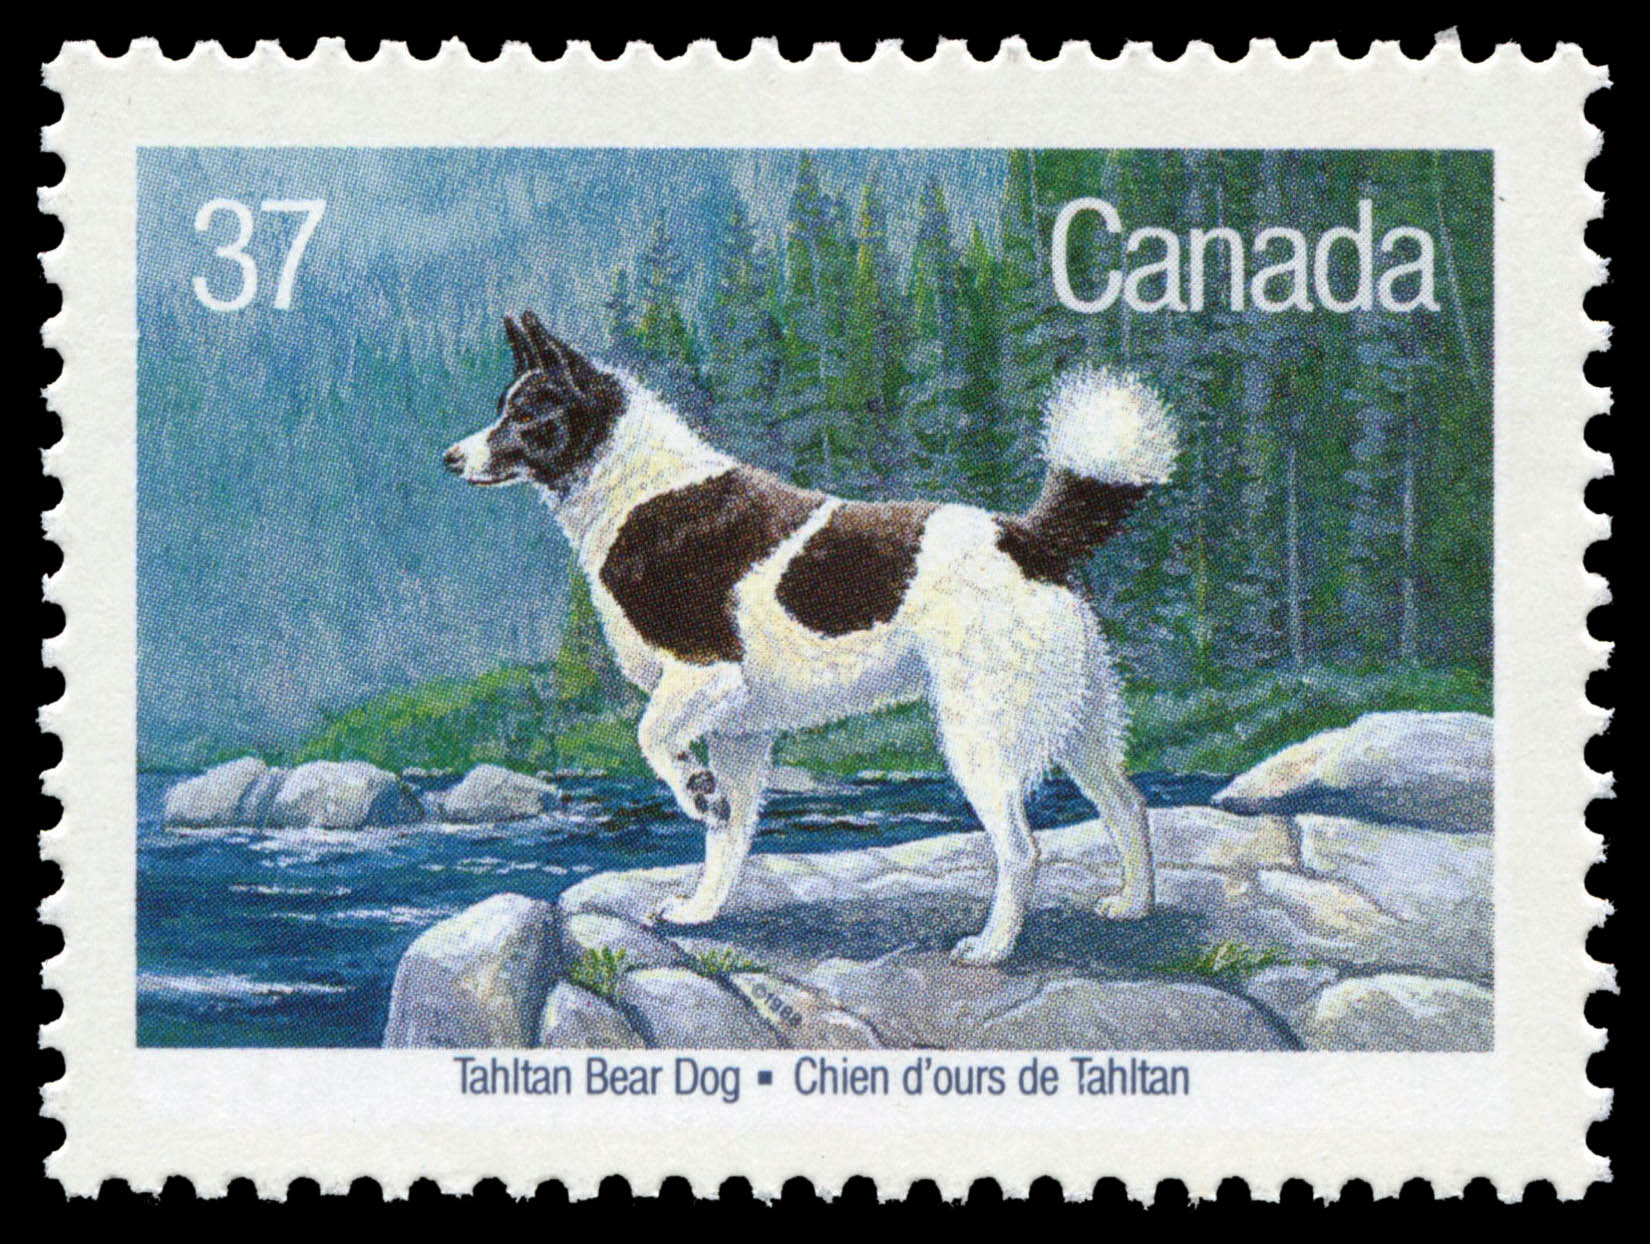 Tahltan Bear Dog Canada Postage Stamp